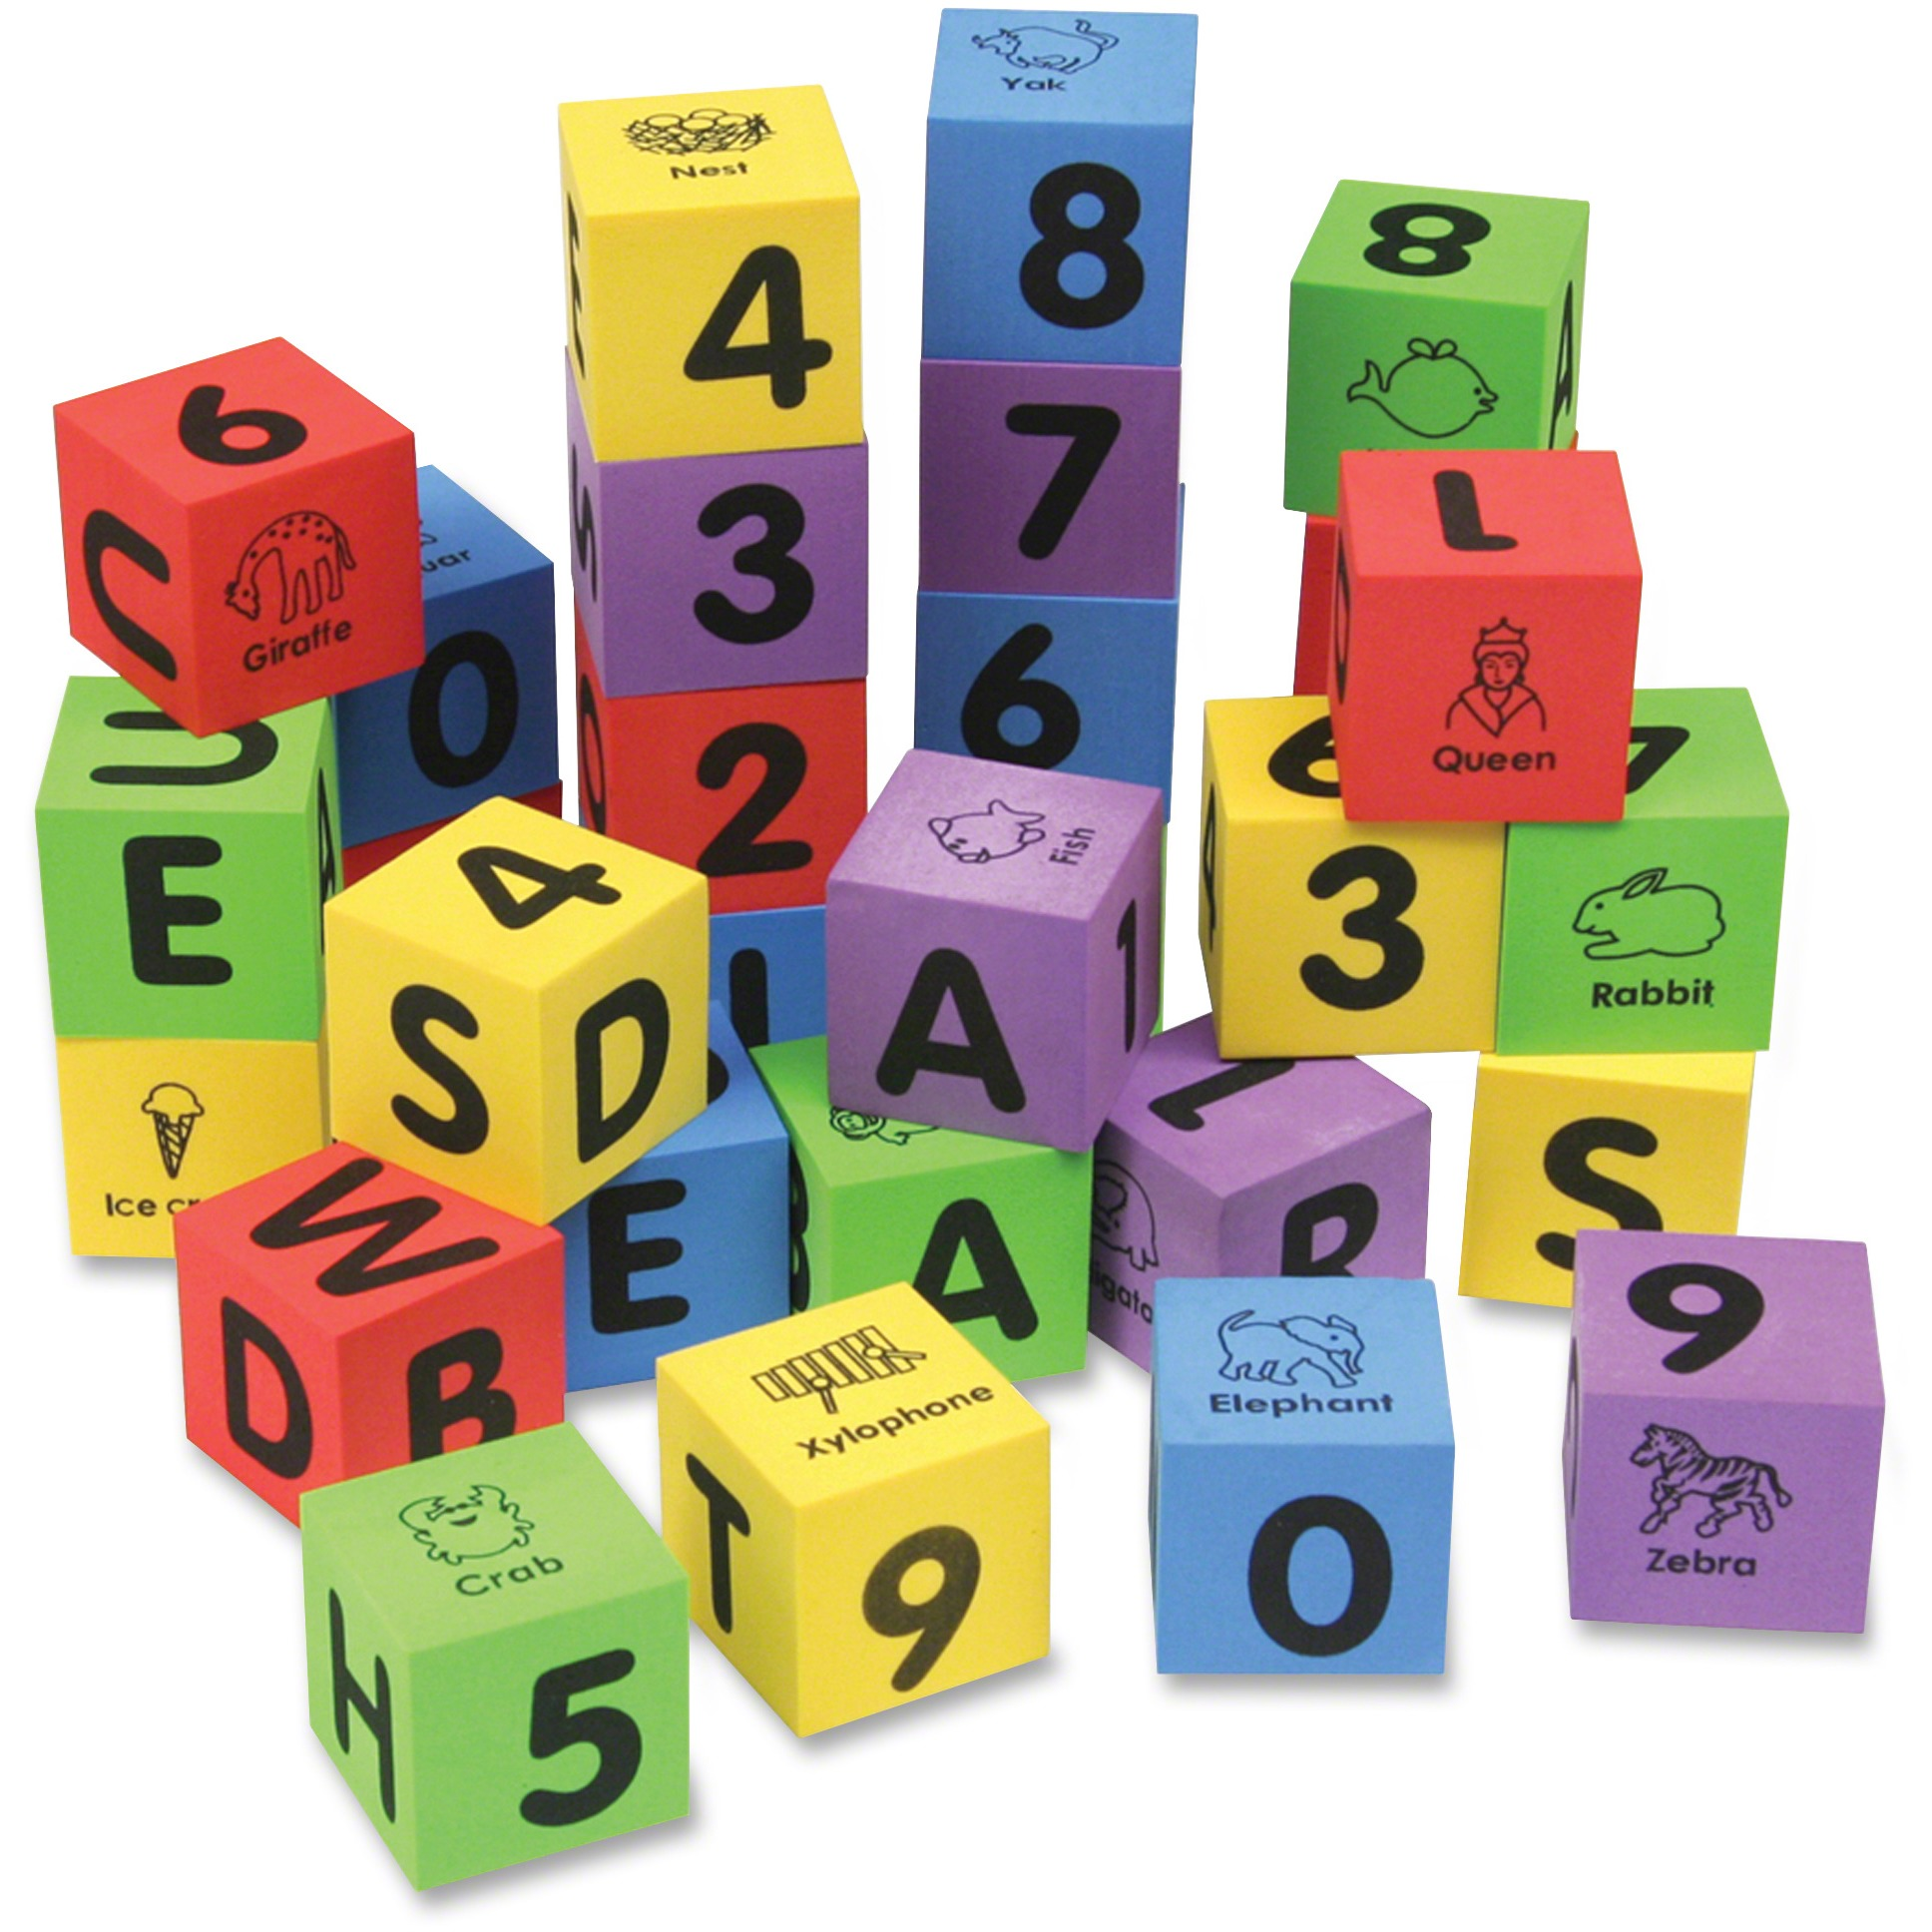 Creativity Street, CKC4416, WonderFoam Number/Letter Blocks Set, 1 Set, Assorted